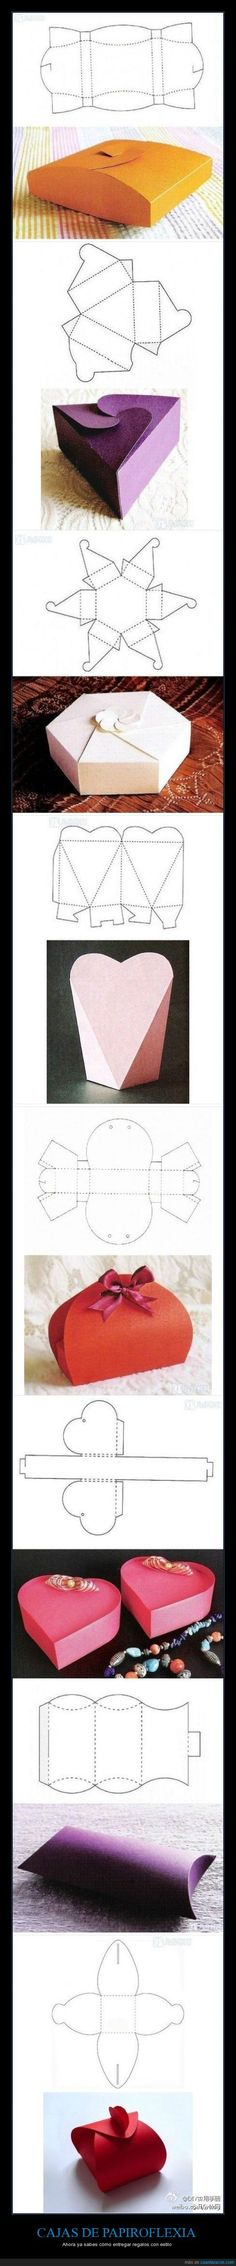 New origami box template patterns ideas Fun Crafts, Diy And Crafts, Arts And Crafts, Homemade Gifts, Diy Gifts, Ideas Paso A Paso, Papier Diy, Diy Gift Box, Gift Boxes